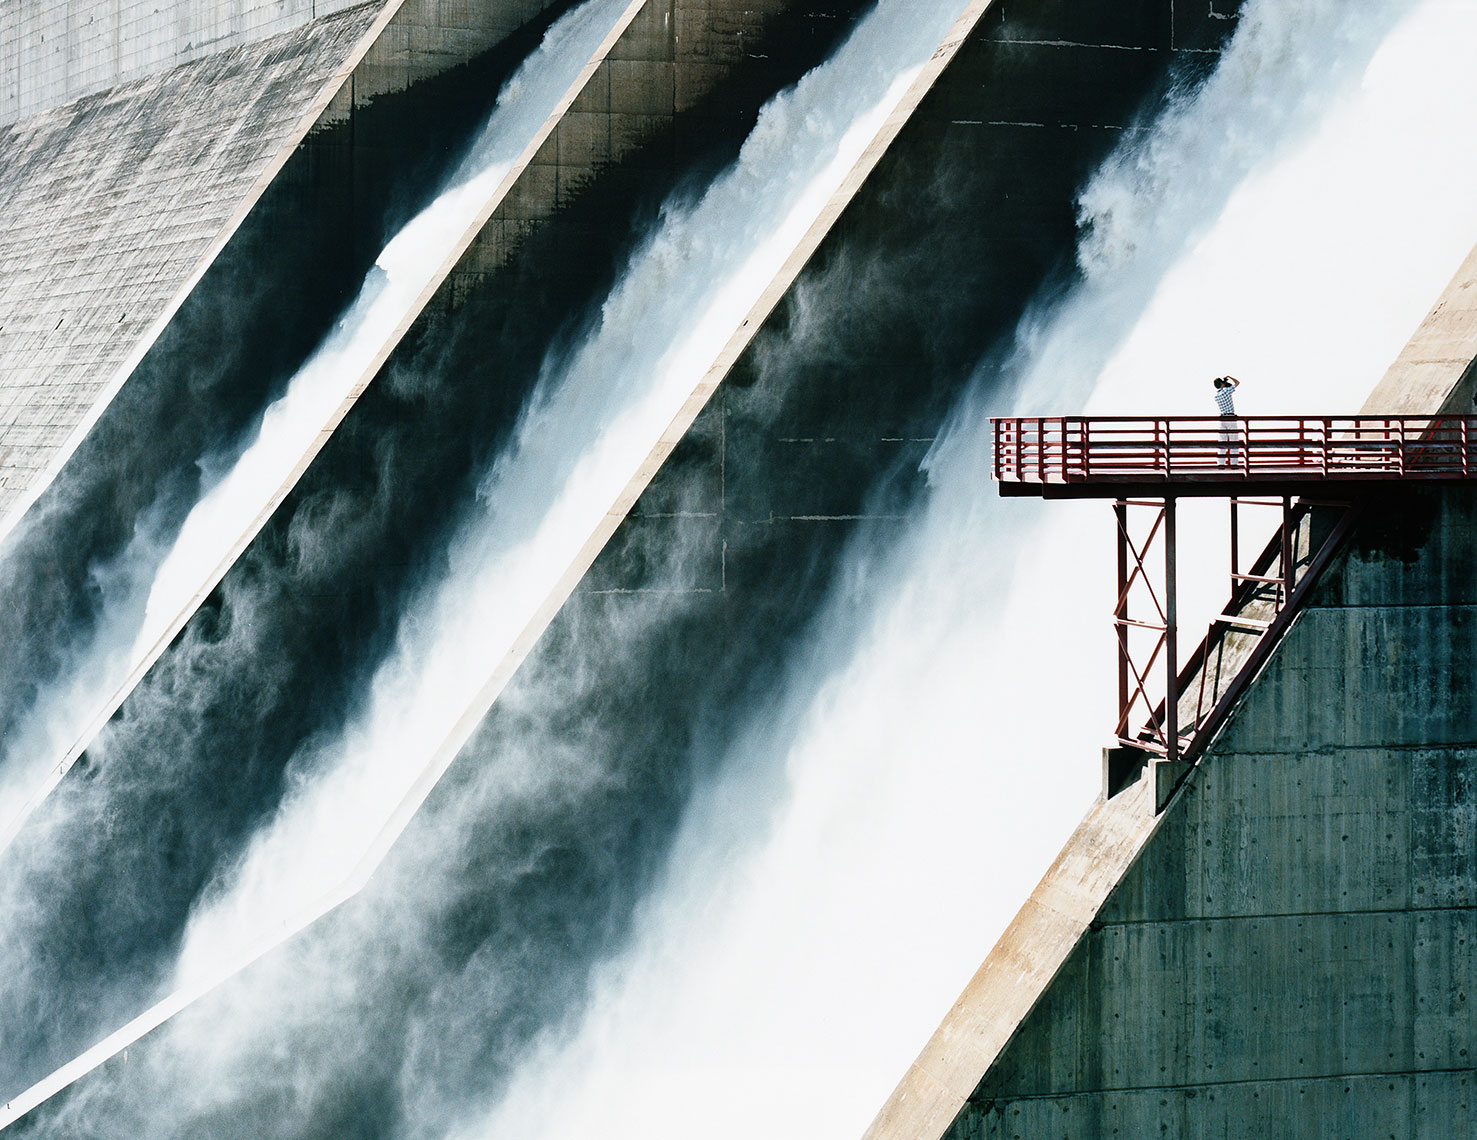 Hydro_Power_Projects_54_1140